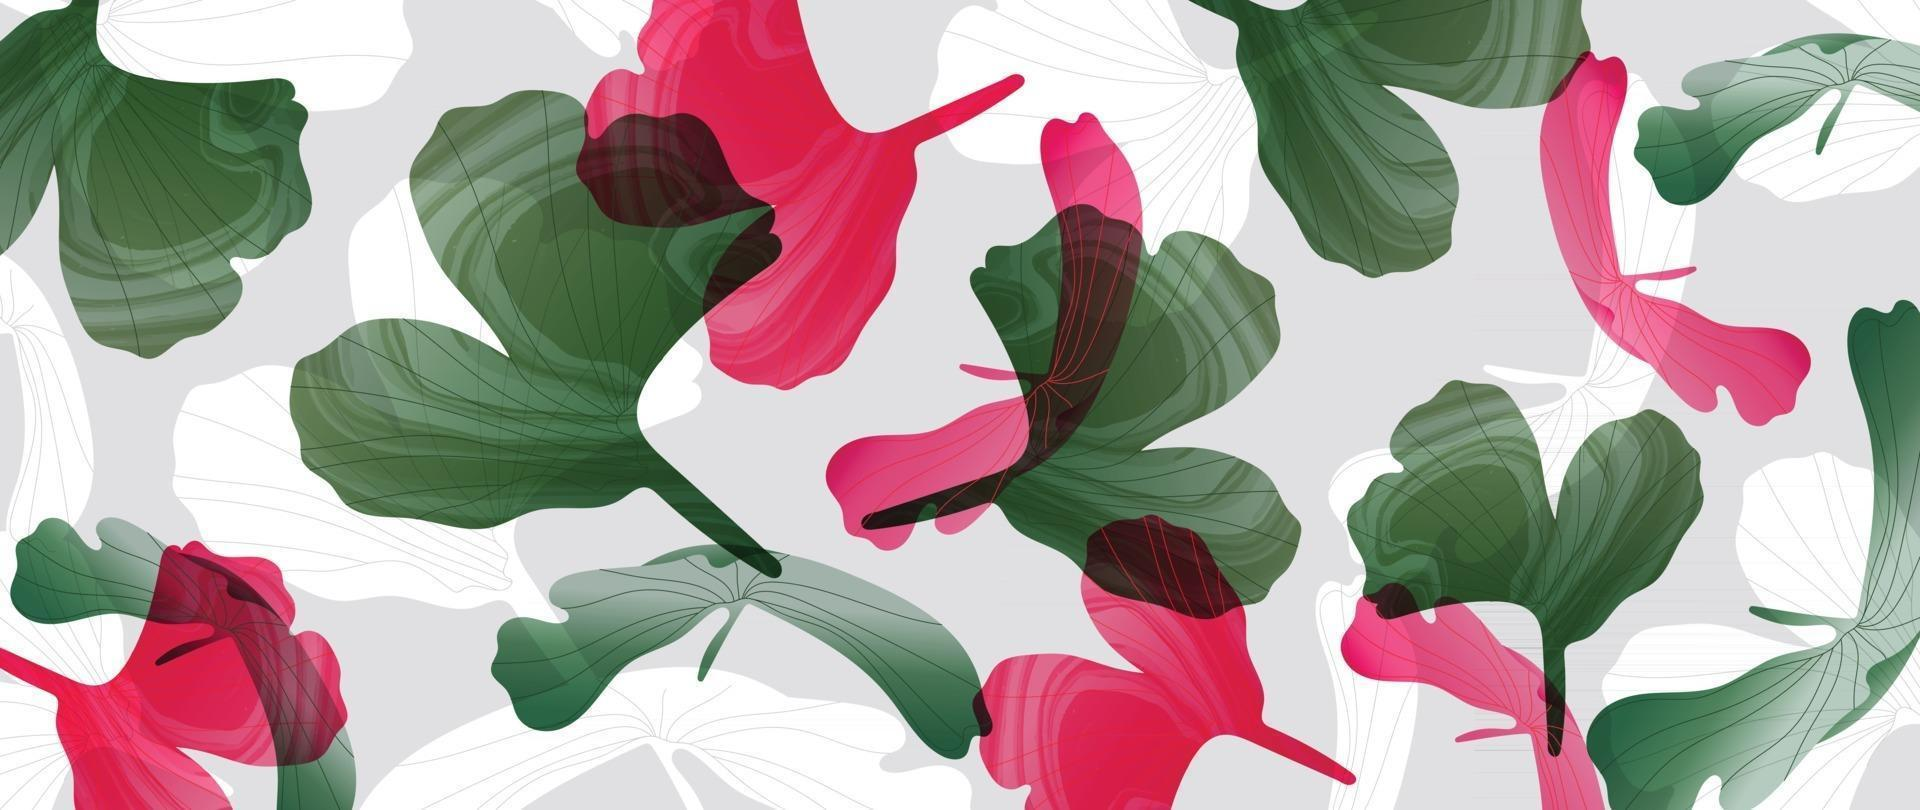 Abstract art tropical leaves background vector. Wallpaper design with watercolor art texture from palm leaves, Jungle leaves, monstera leaf, exotic botanical floral pattern. vector